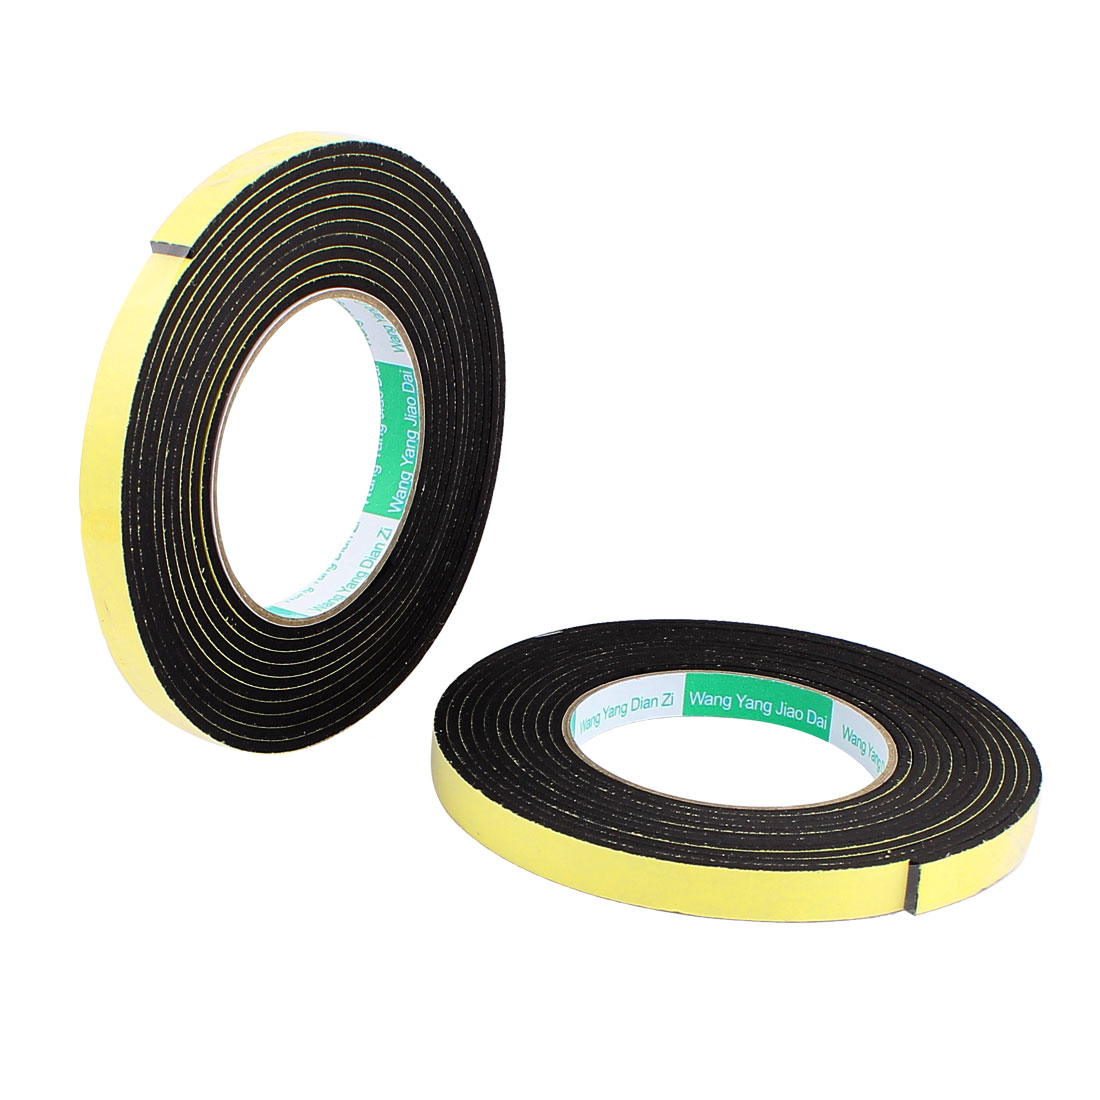 2 Pcs 1.2CM Width 4M Length 3MM Thick Single Sided Sealing Shockproof Sponge Tape